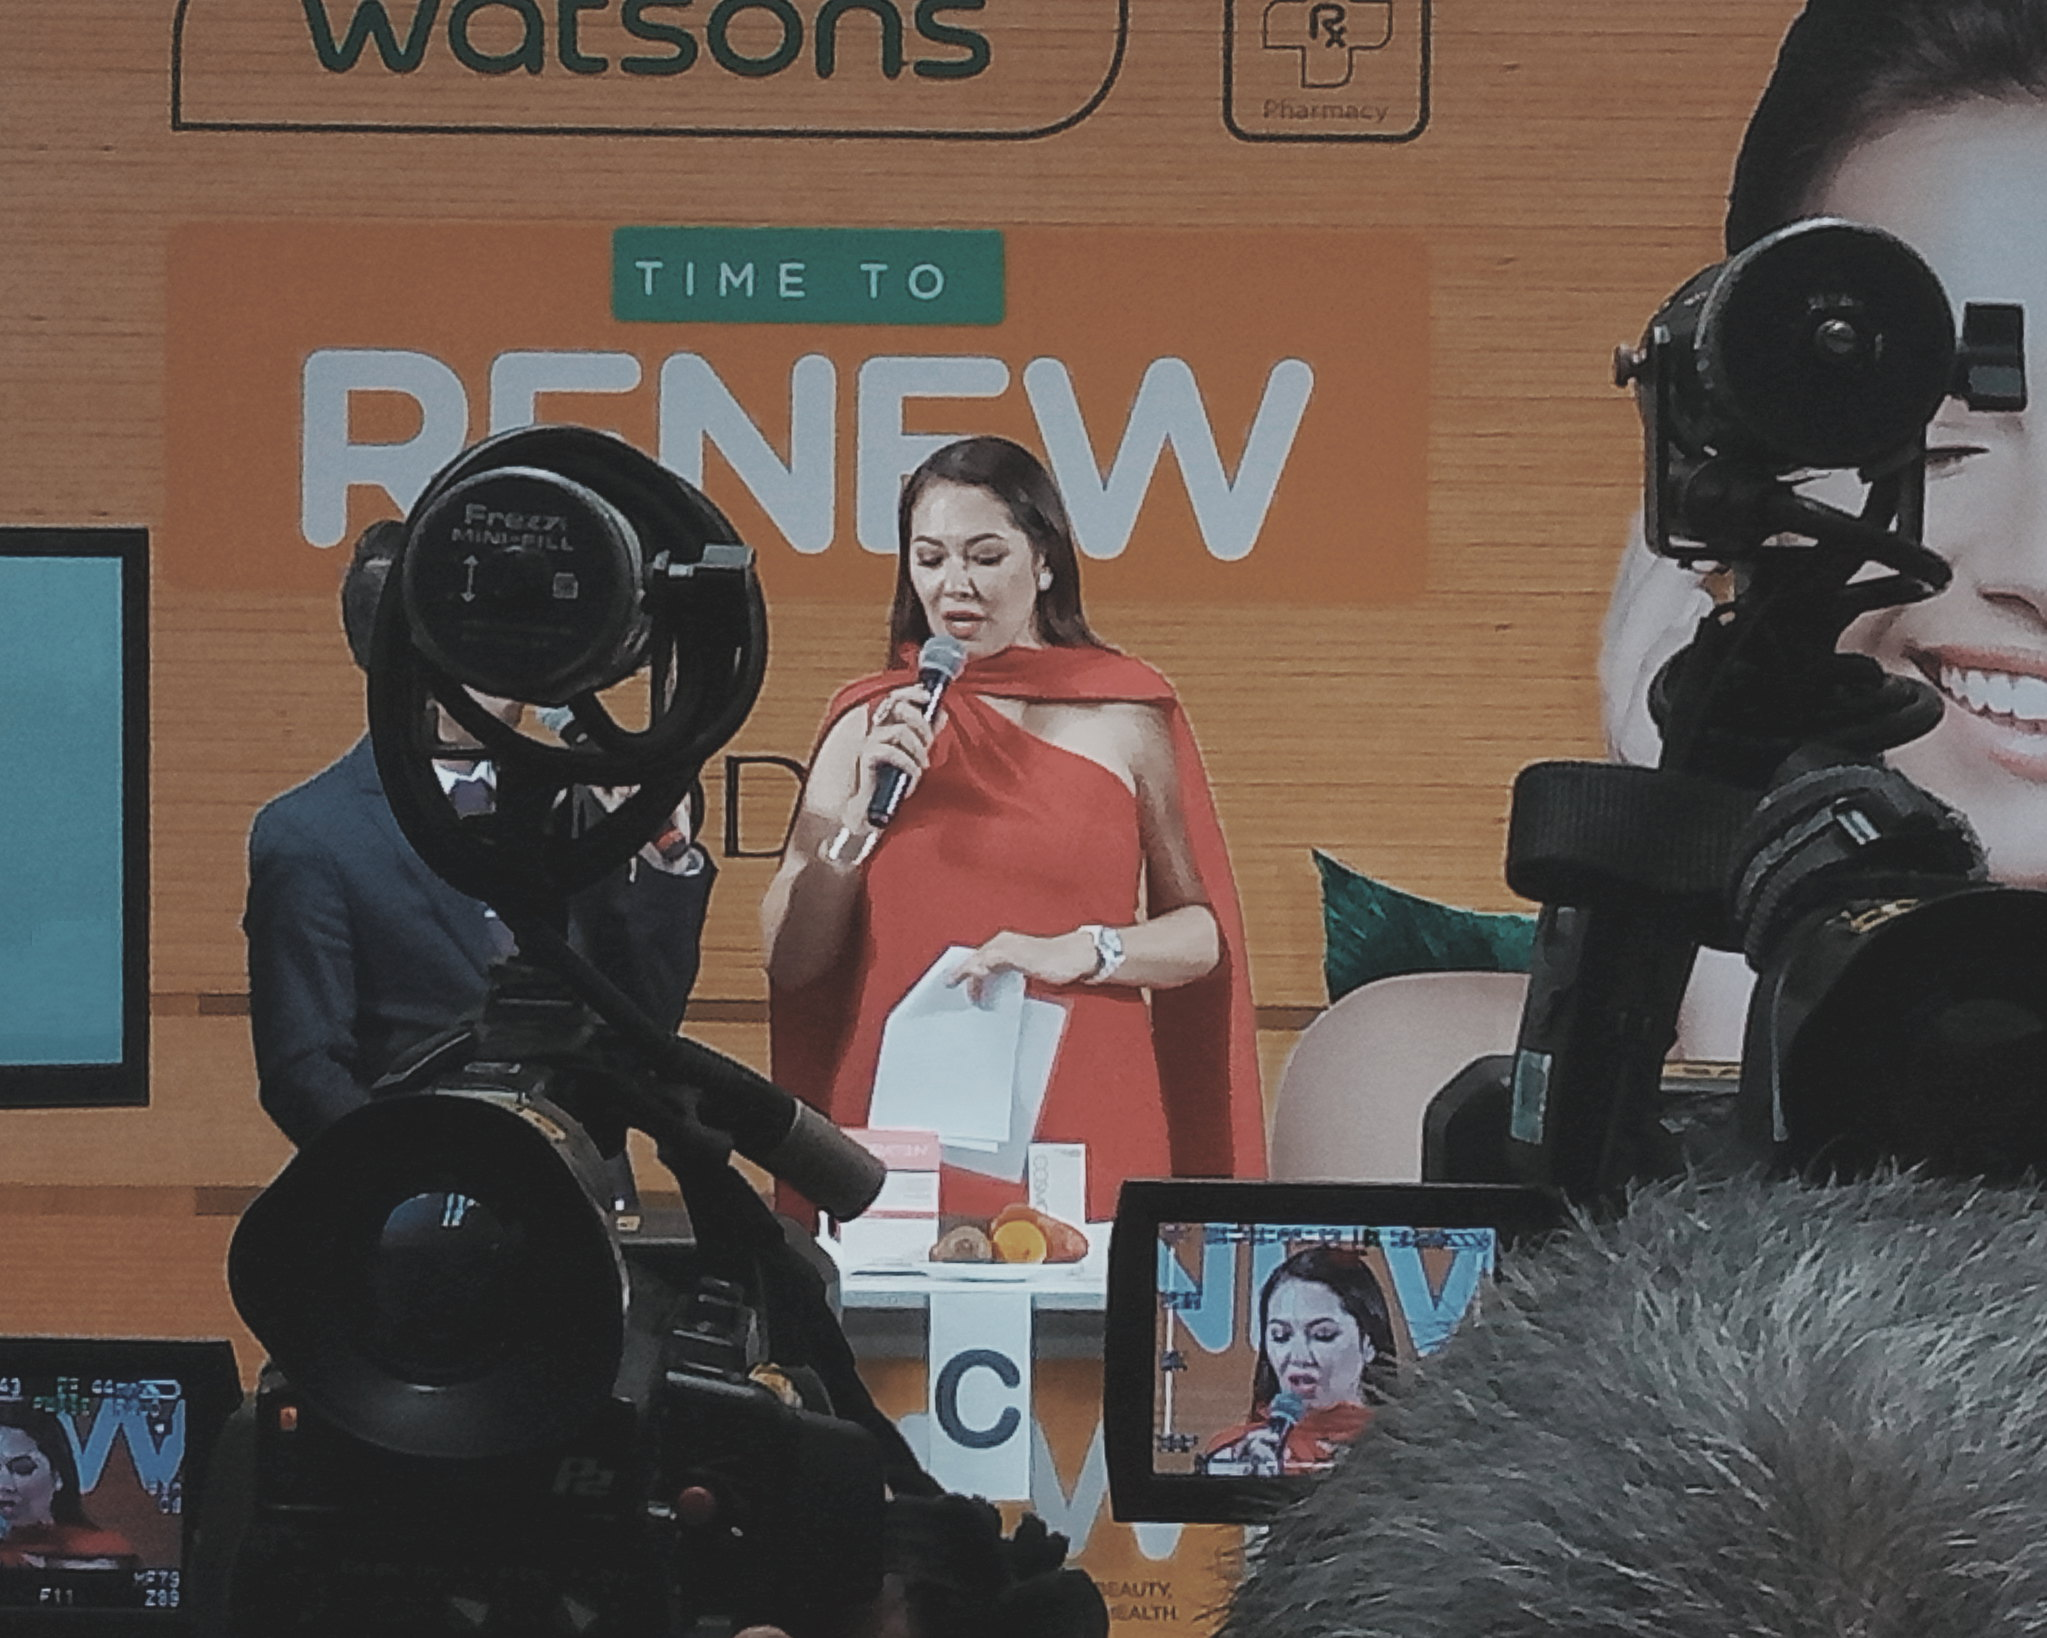 Watson's Time to Renew Campaign